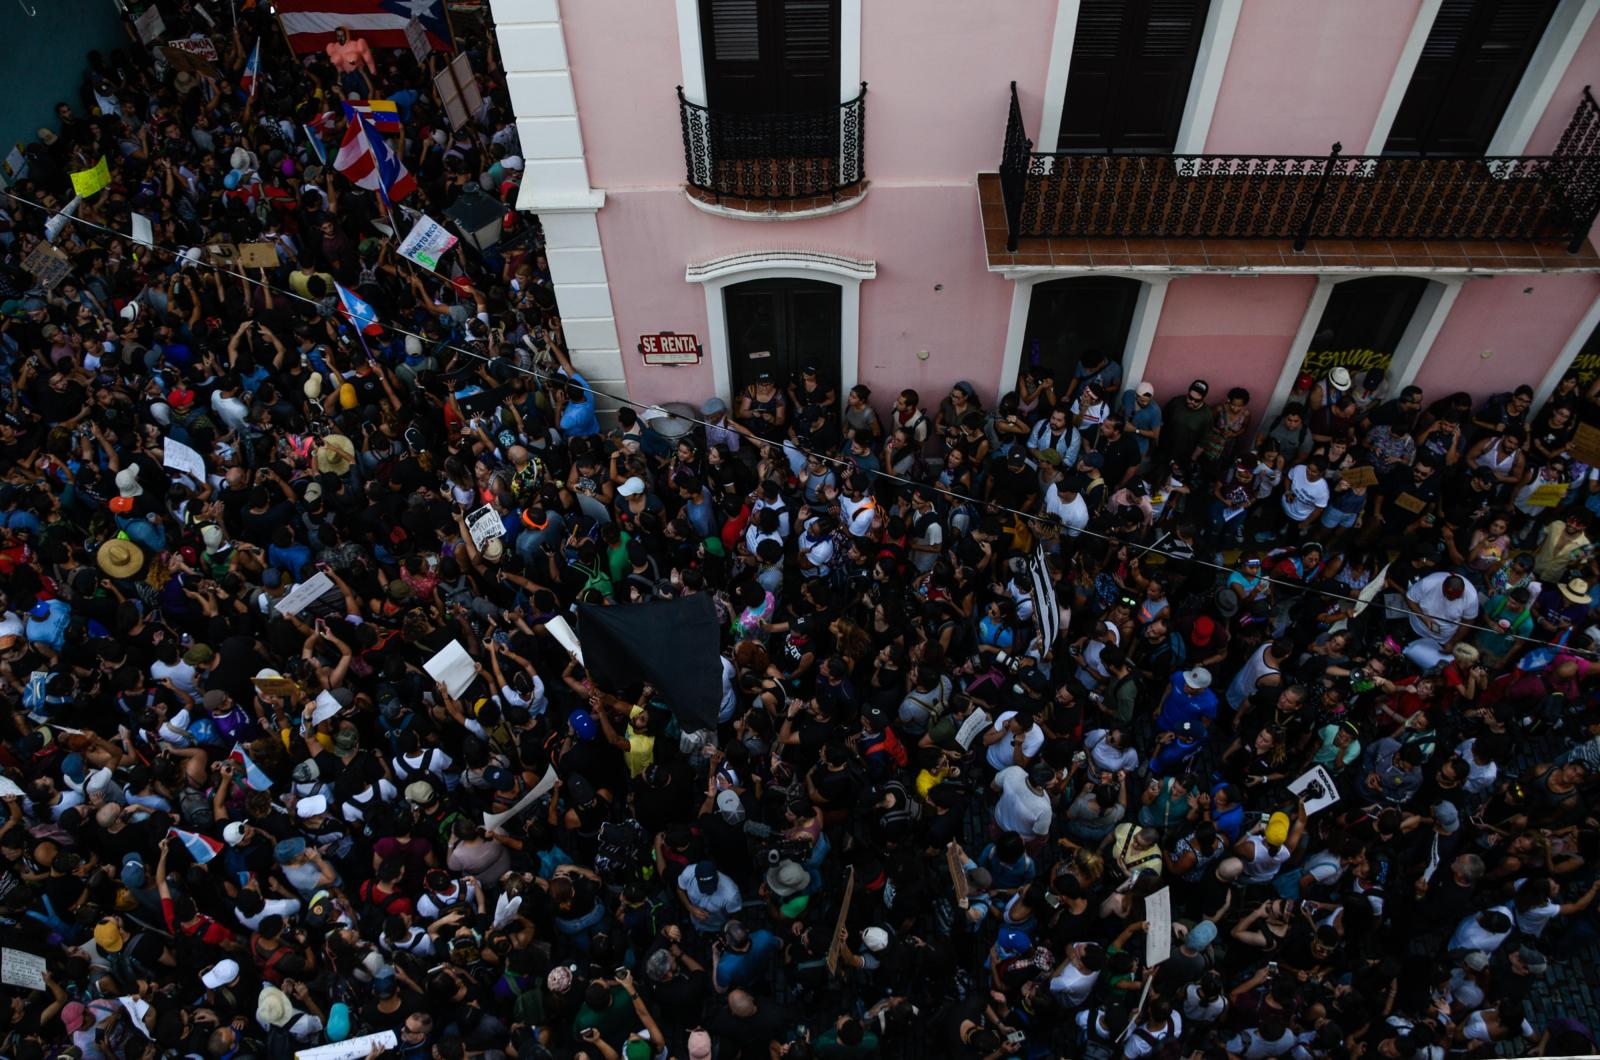 Protest at the Fortaleza.